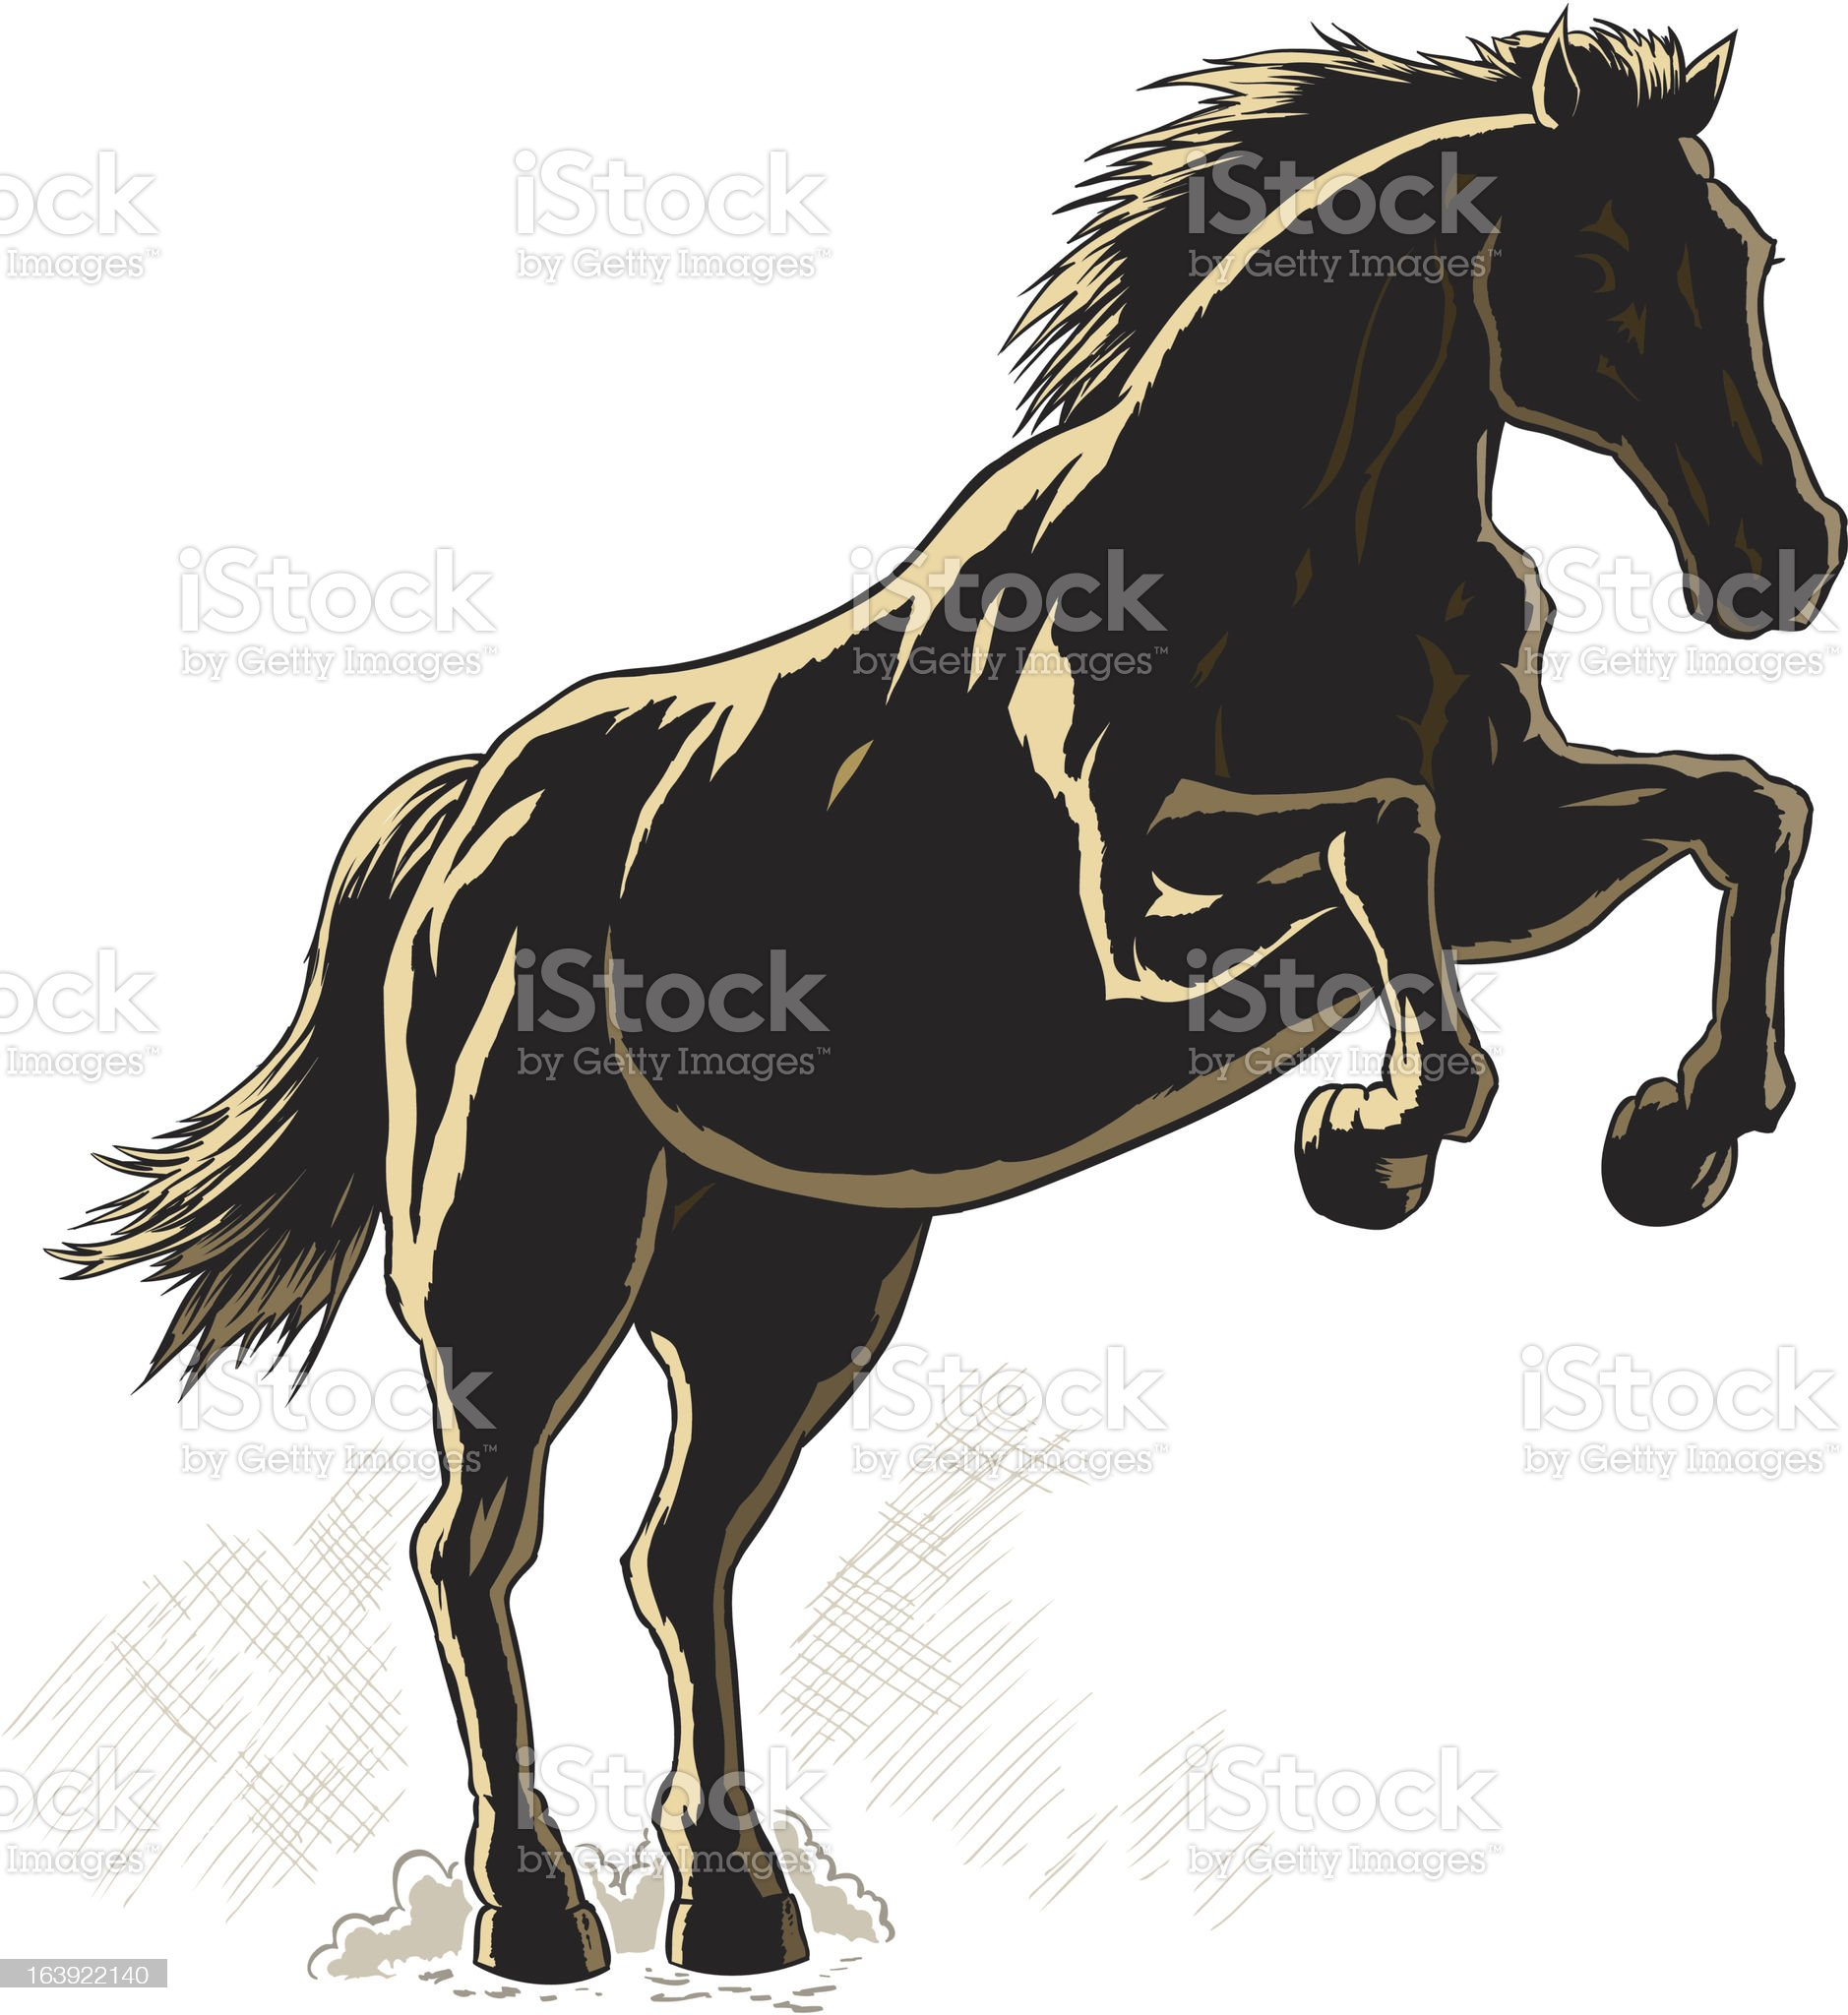 Outline of a horse. royalty-free stock vector art